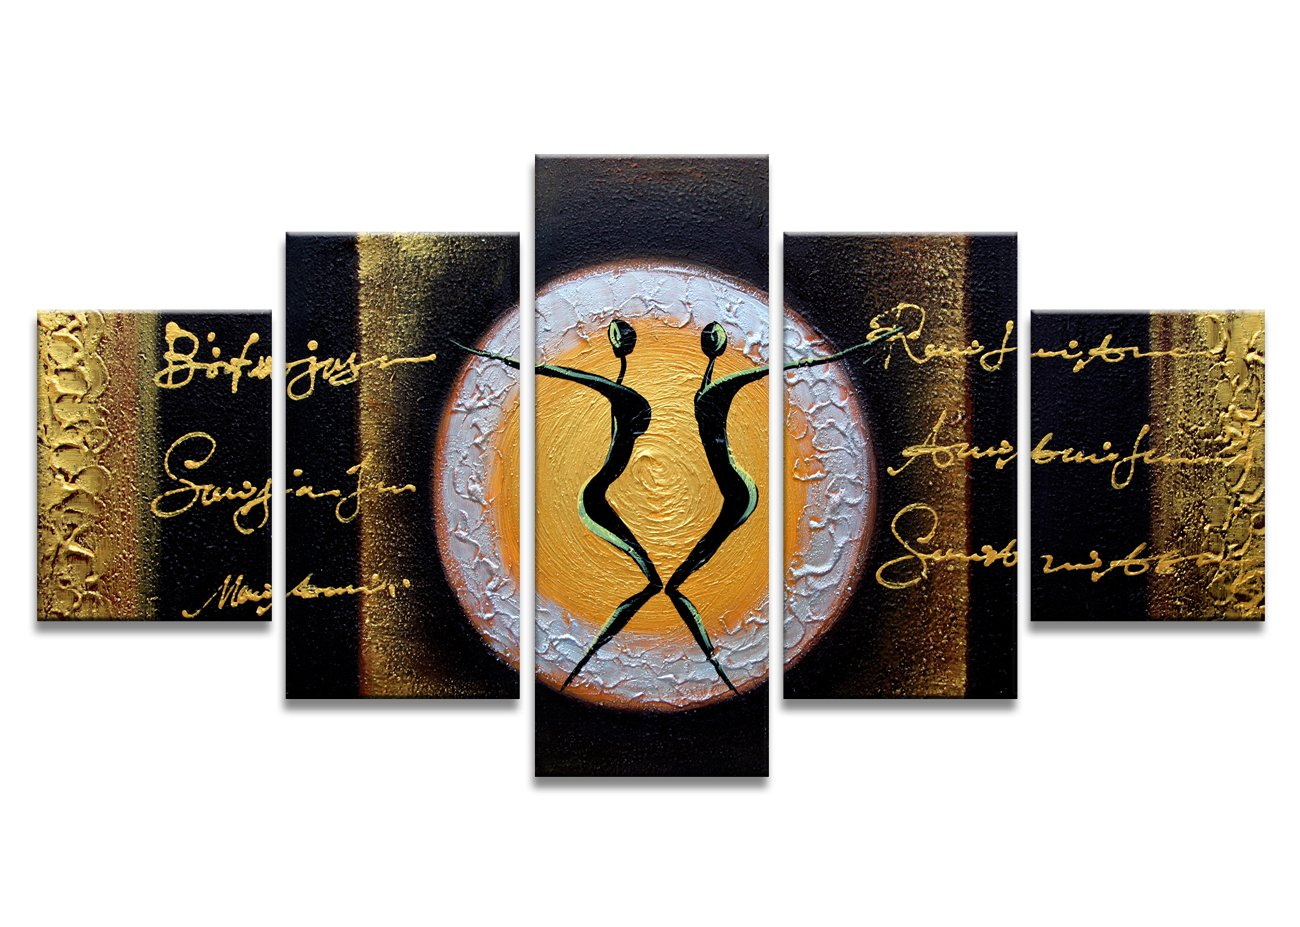 Moyedecor Art - 5 Panel Wall Art Gold and Black Dance Paintings The Picture Prints On Canvas Abstract Pictures For Home Decor Decoration Living Room Ready to Hang